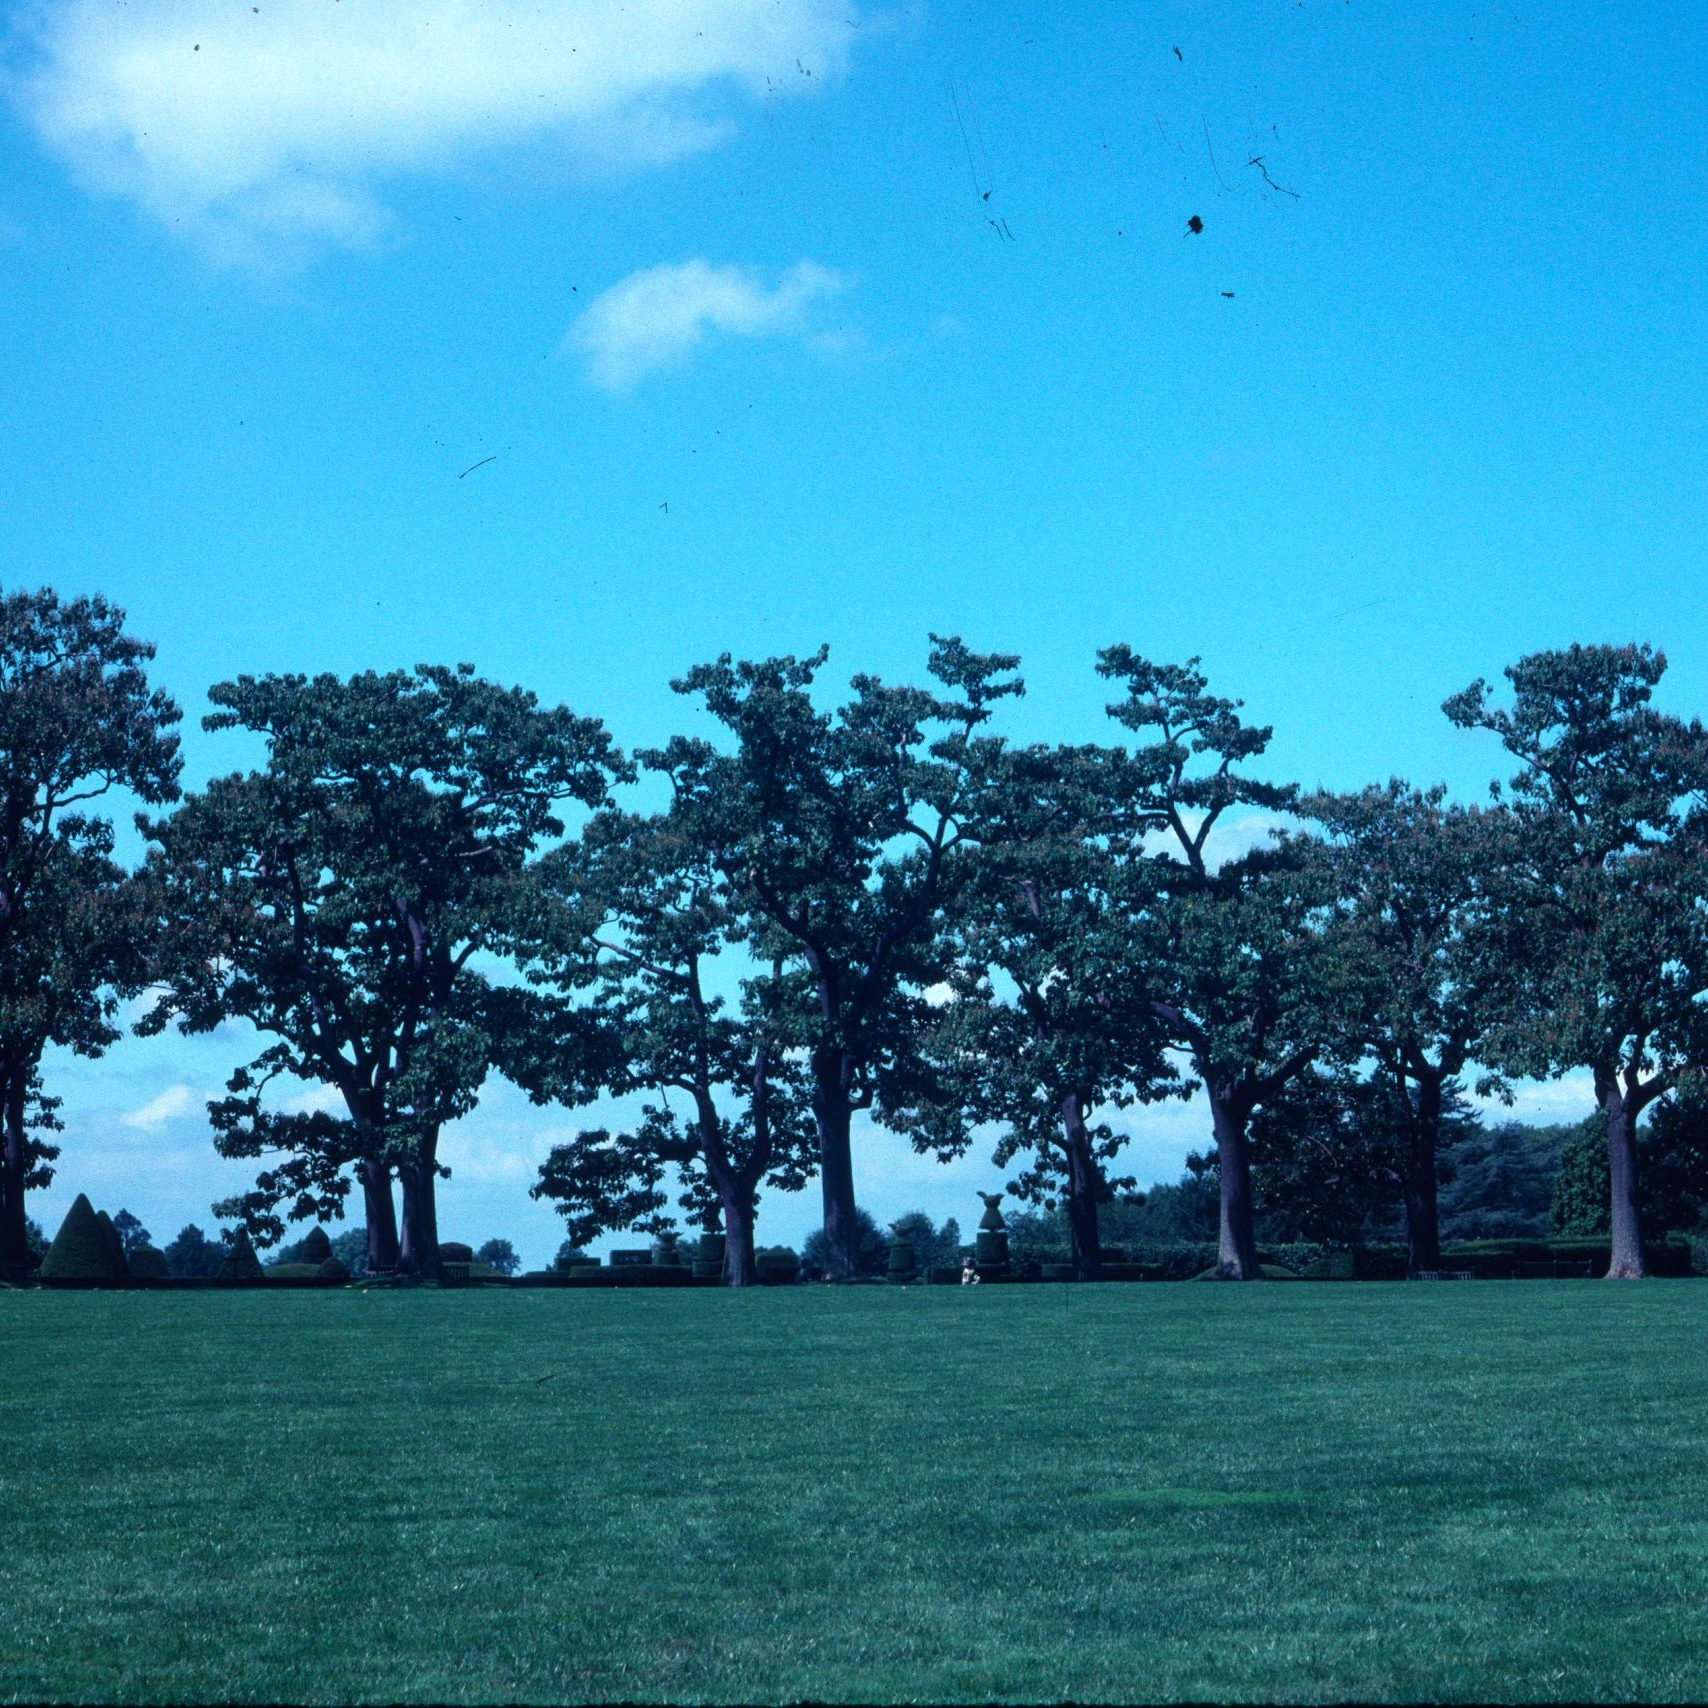 Paulownia Trees in the distance